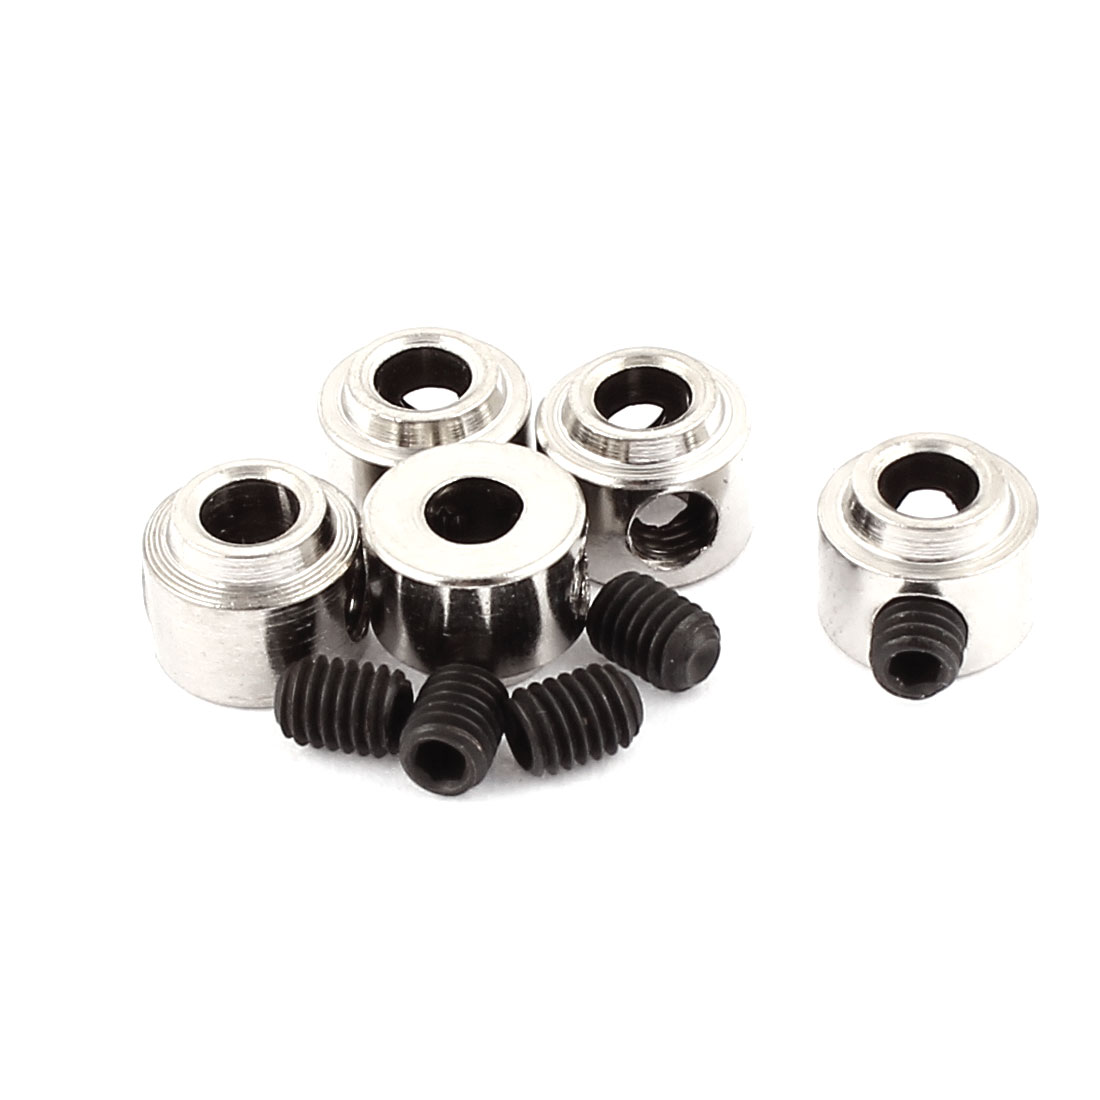 5Pcs RC Airplane Landing Gear Wheel Stoppers 3.1mm Inner Dia 7x5.5mm w Screw